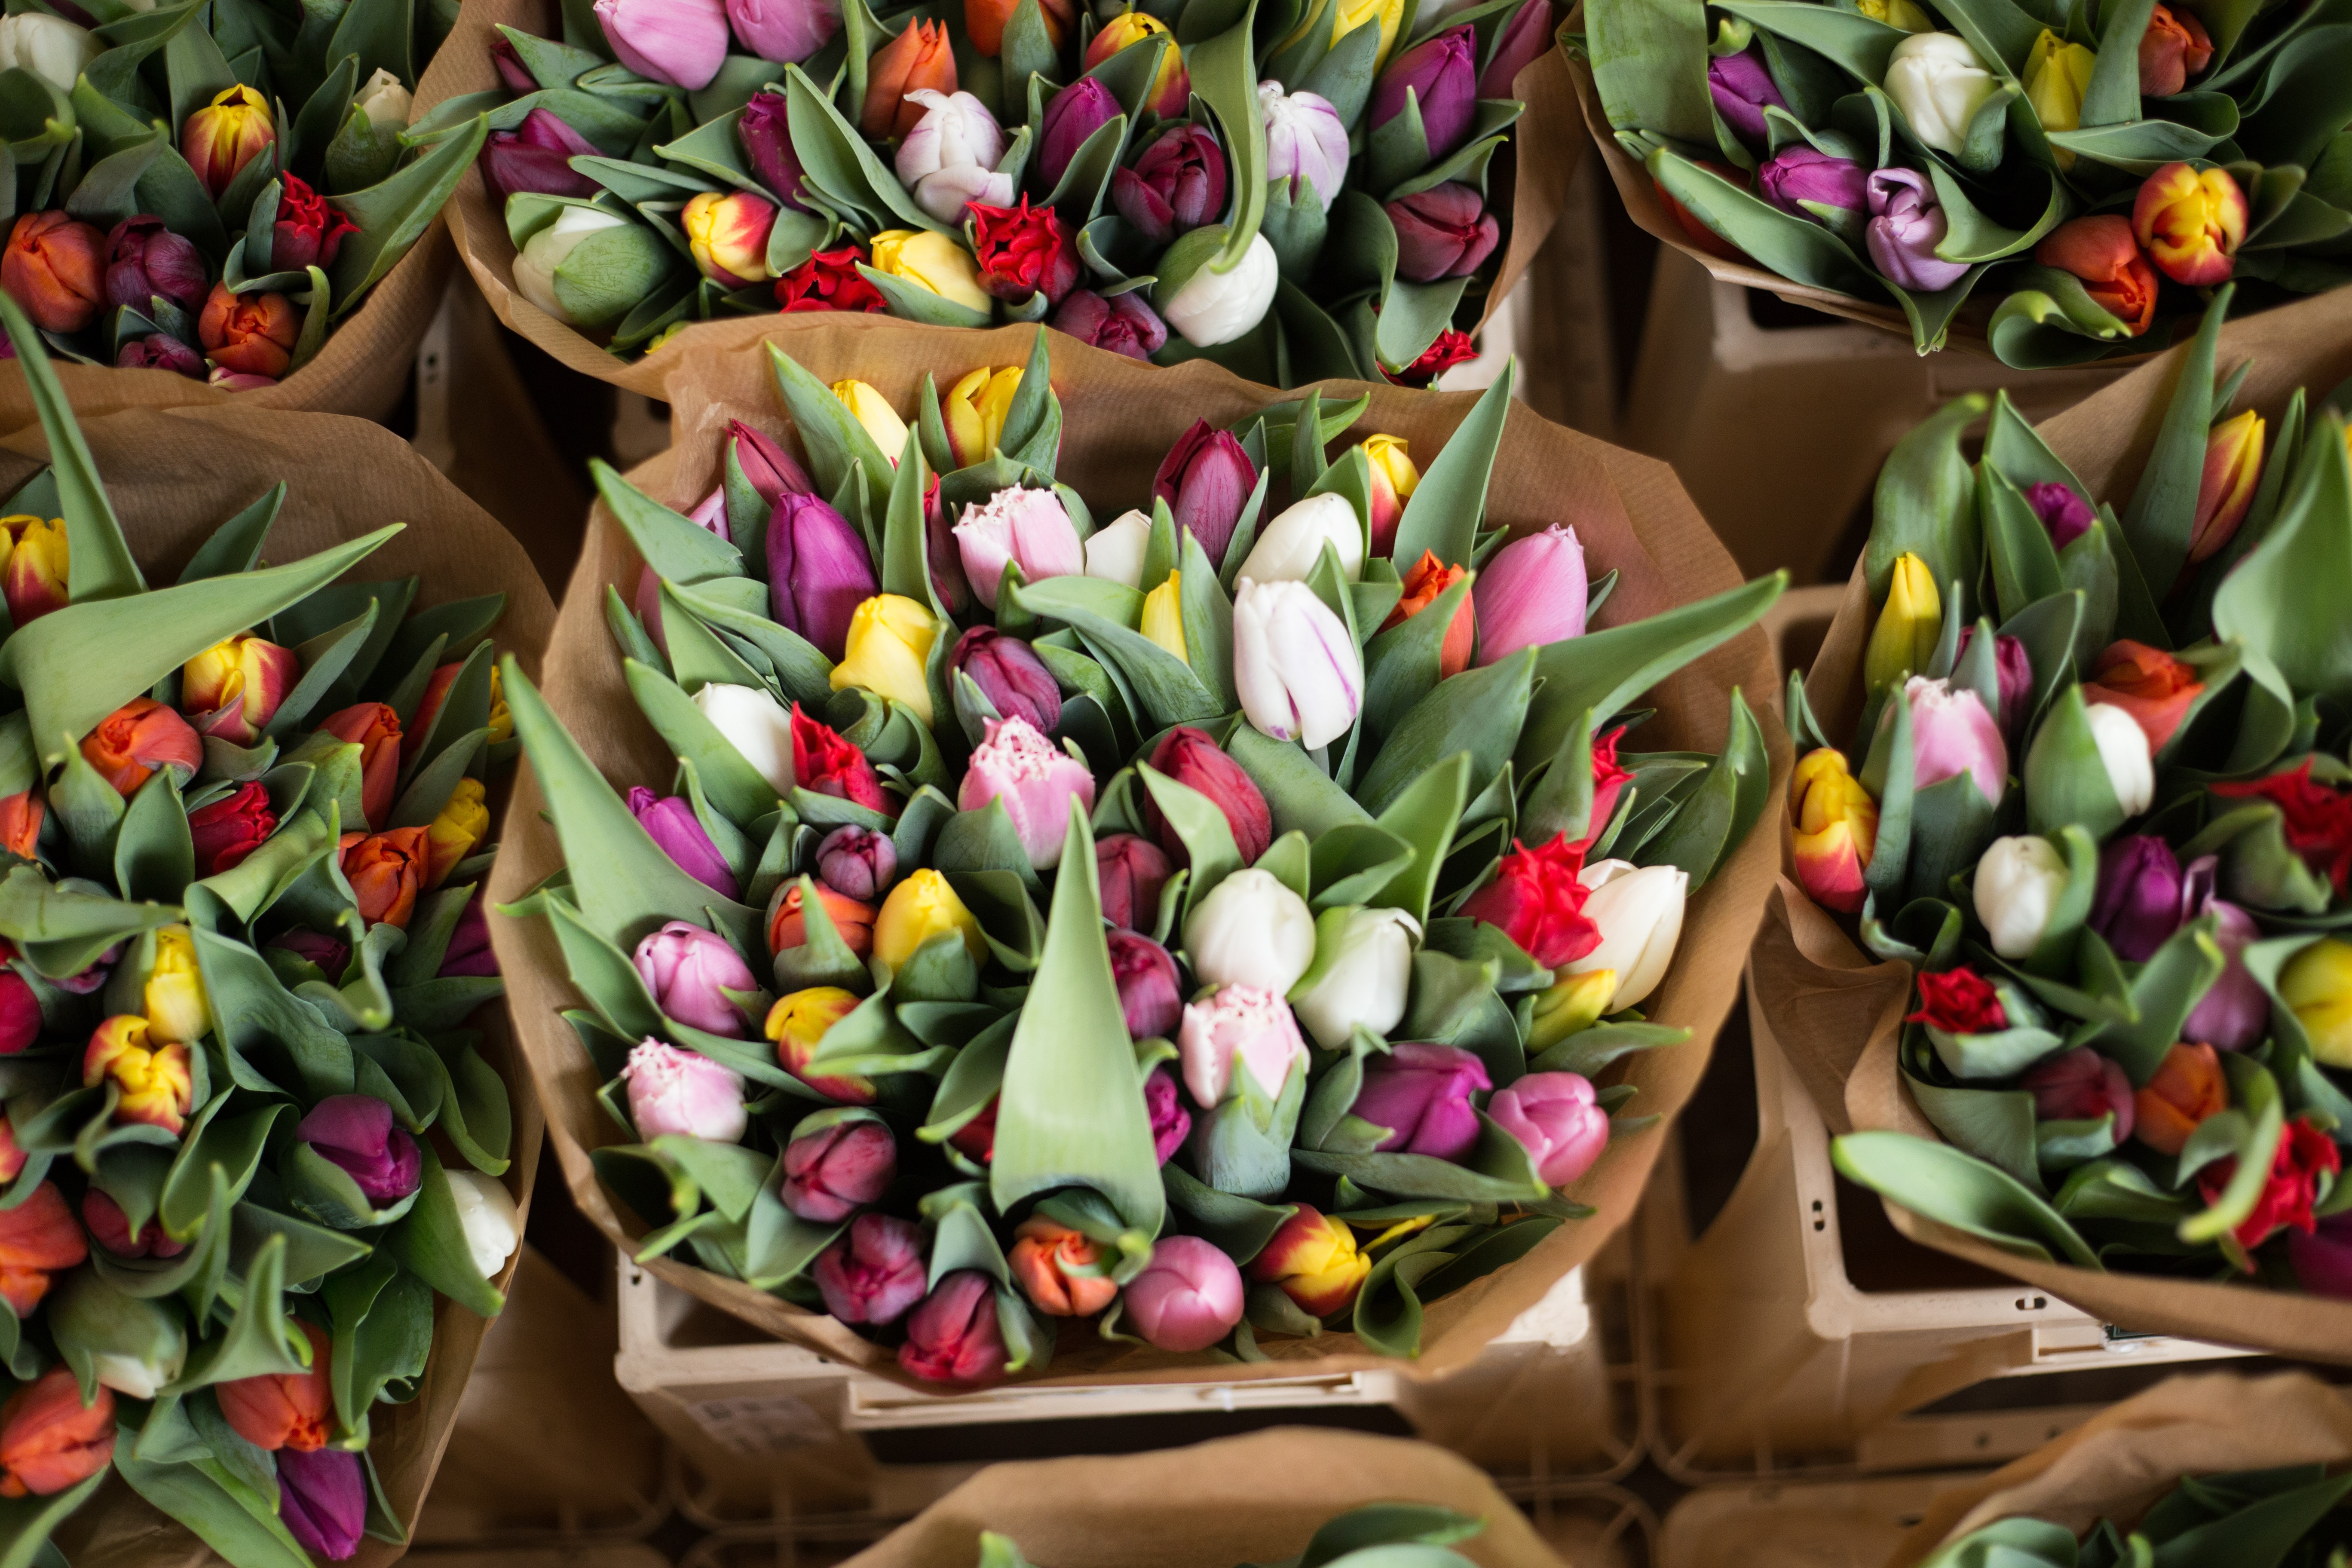 An overhead shot of colorful tulips in bouquets wrapped in brown paper